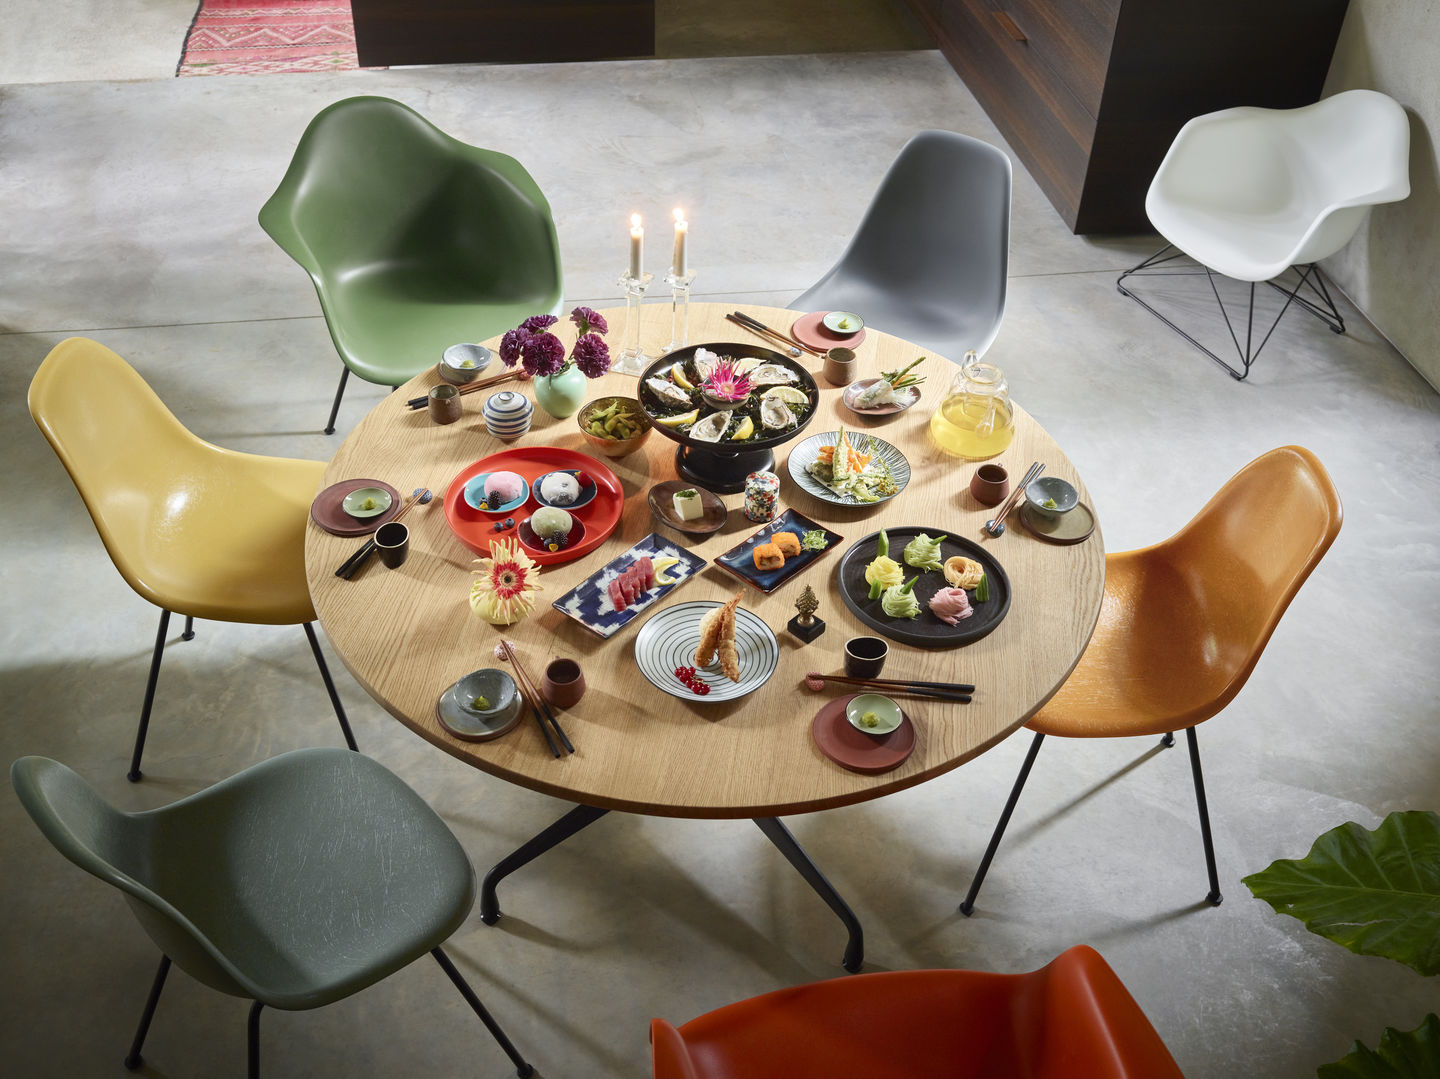 vitra-home-stories-actie-2019-chairs